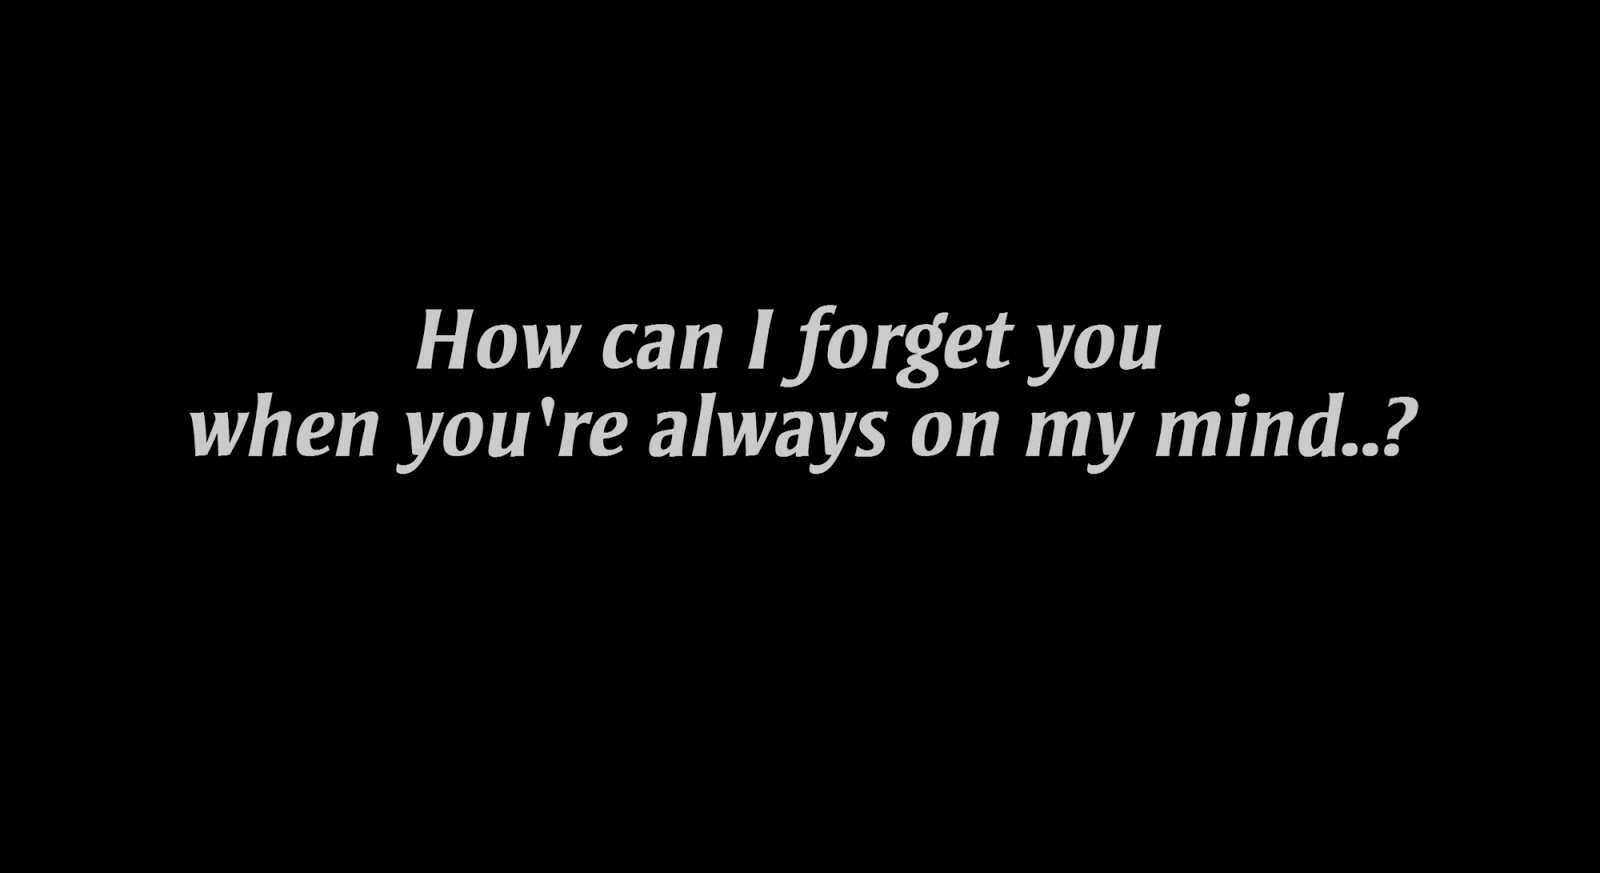 How can I forget you when you're always on my mind